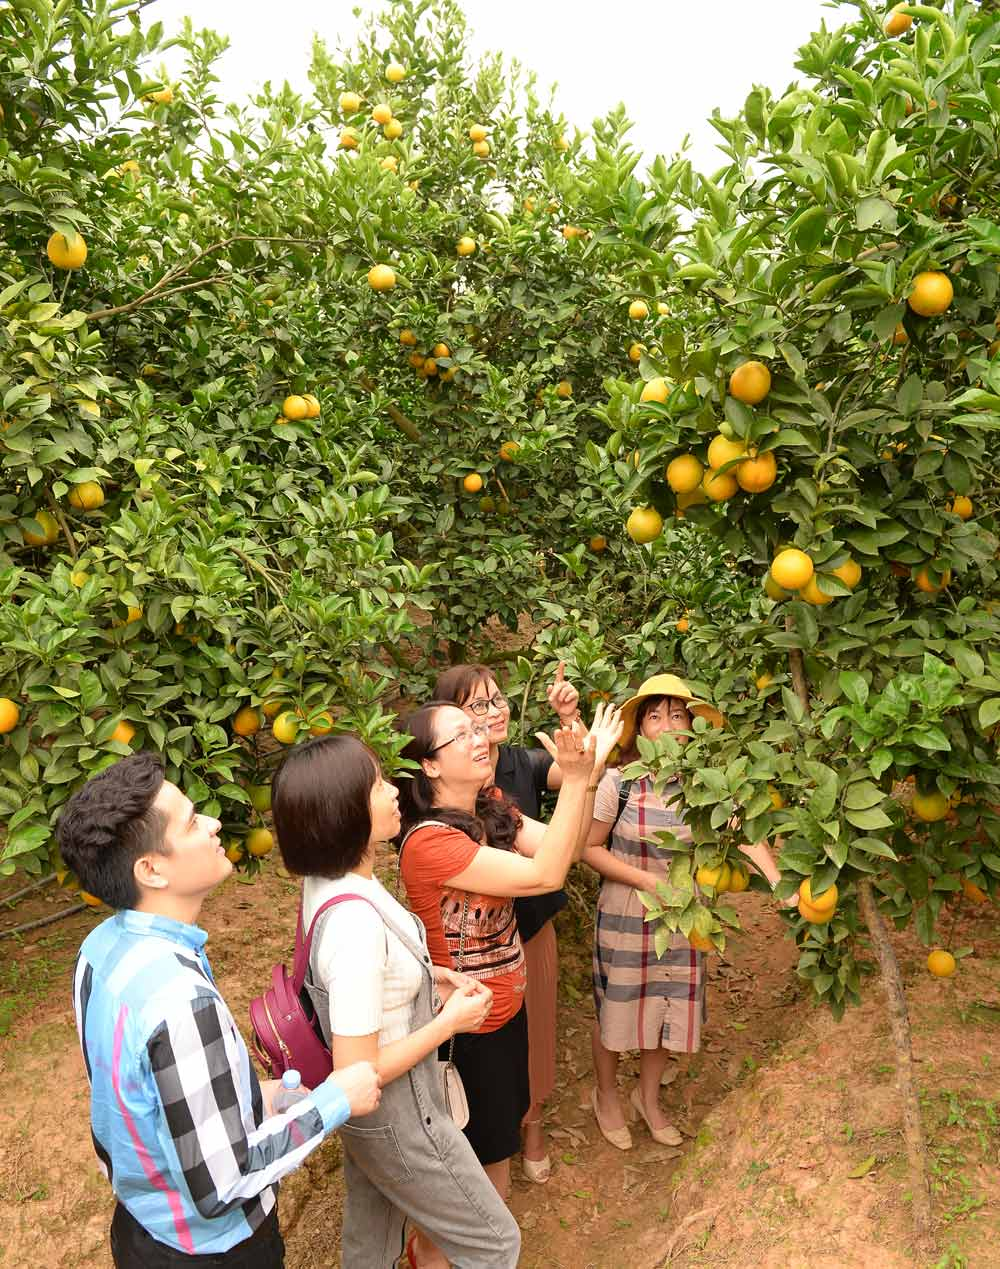 Many customers, Luc Ngan orange and pomelo, electronic trading platform, Bac Giang province, slightly increased price, delegations of tourists